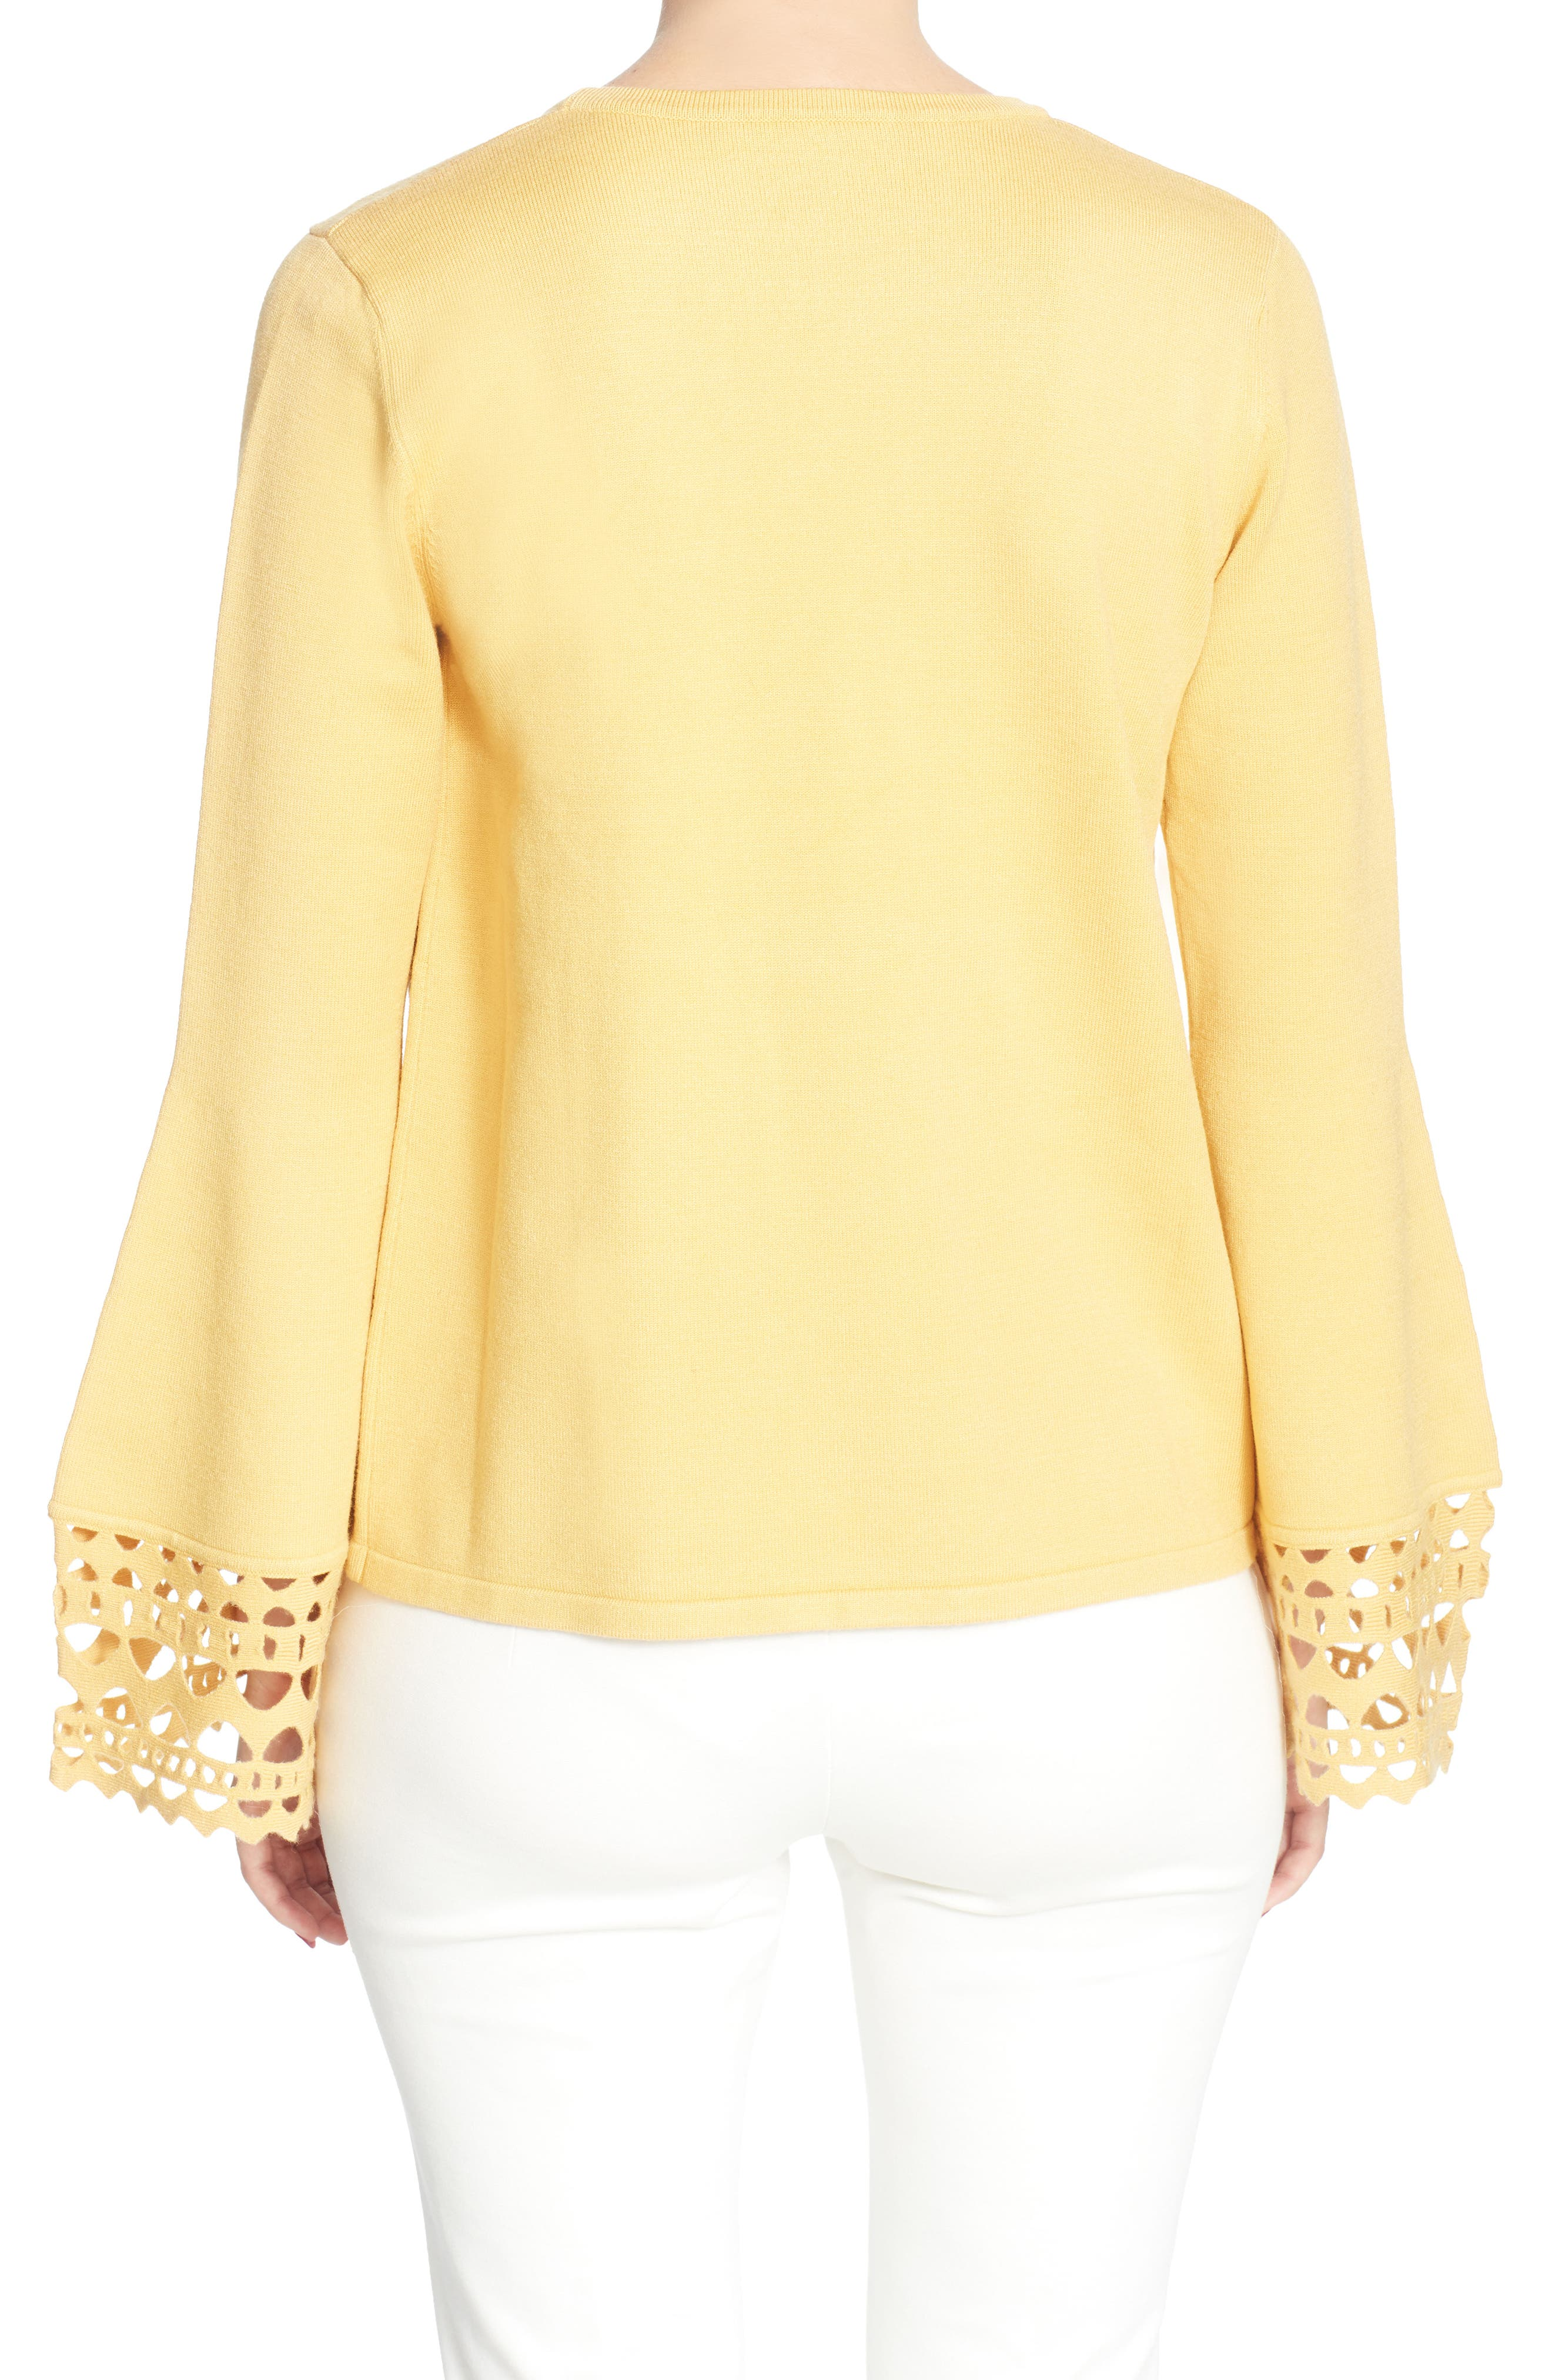 Deco Bell Sleeve Sweater,                             Alternate thumbnail 2, color,                             767